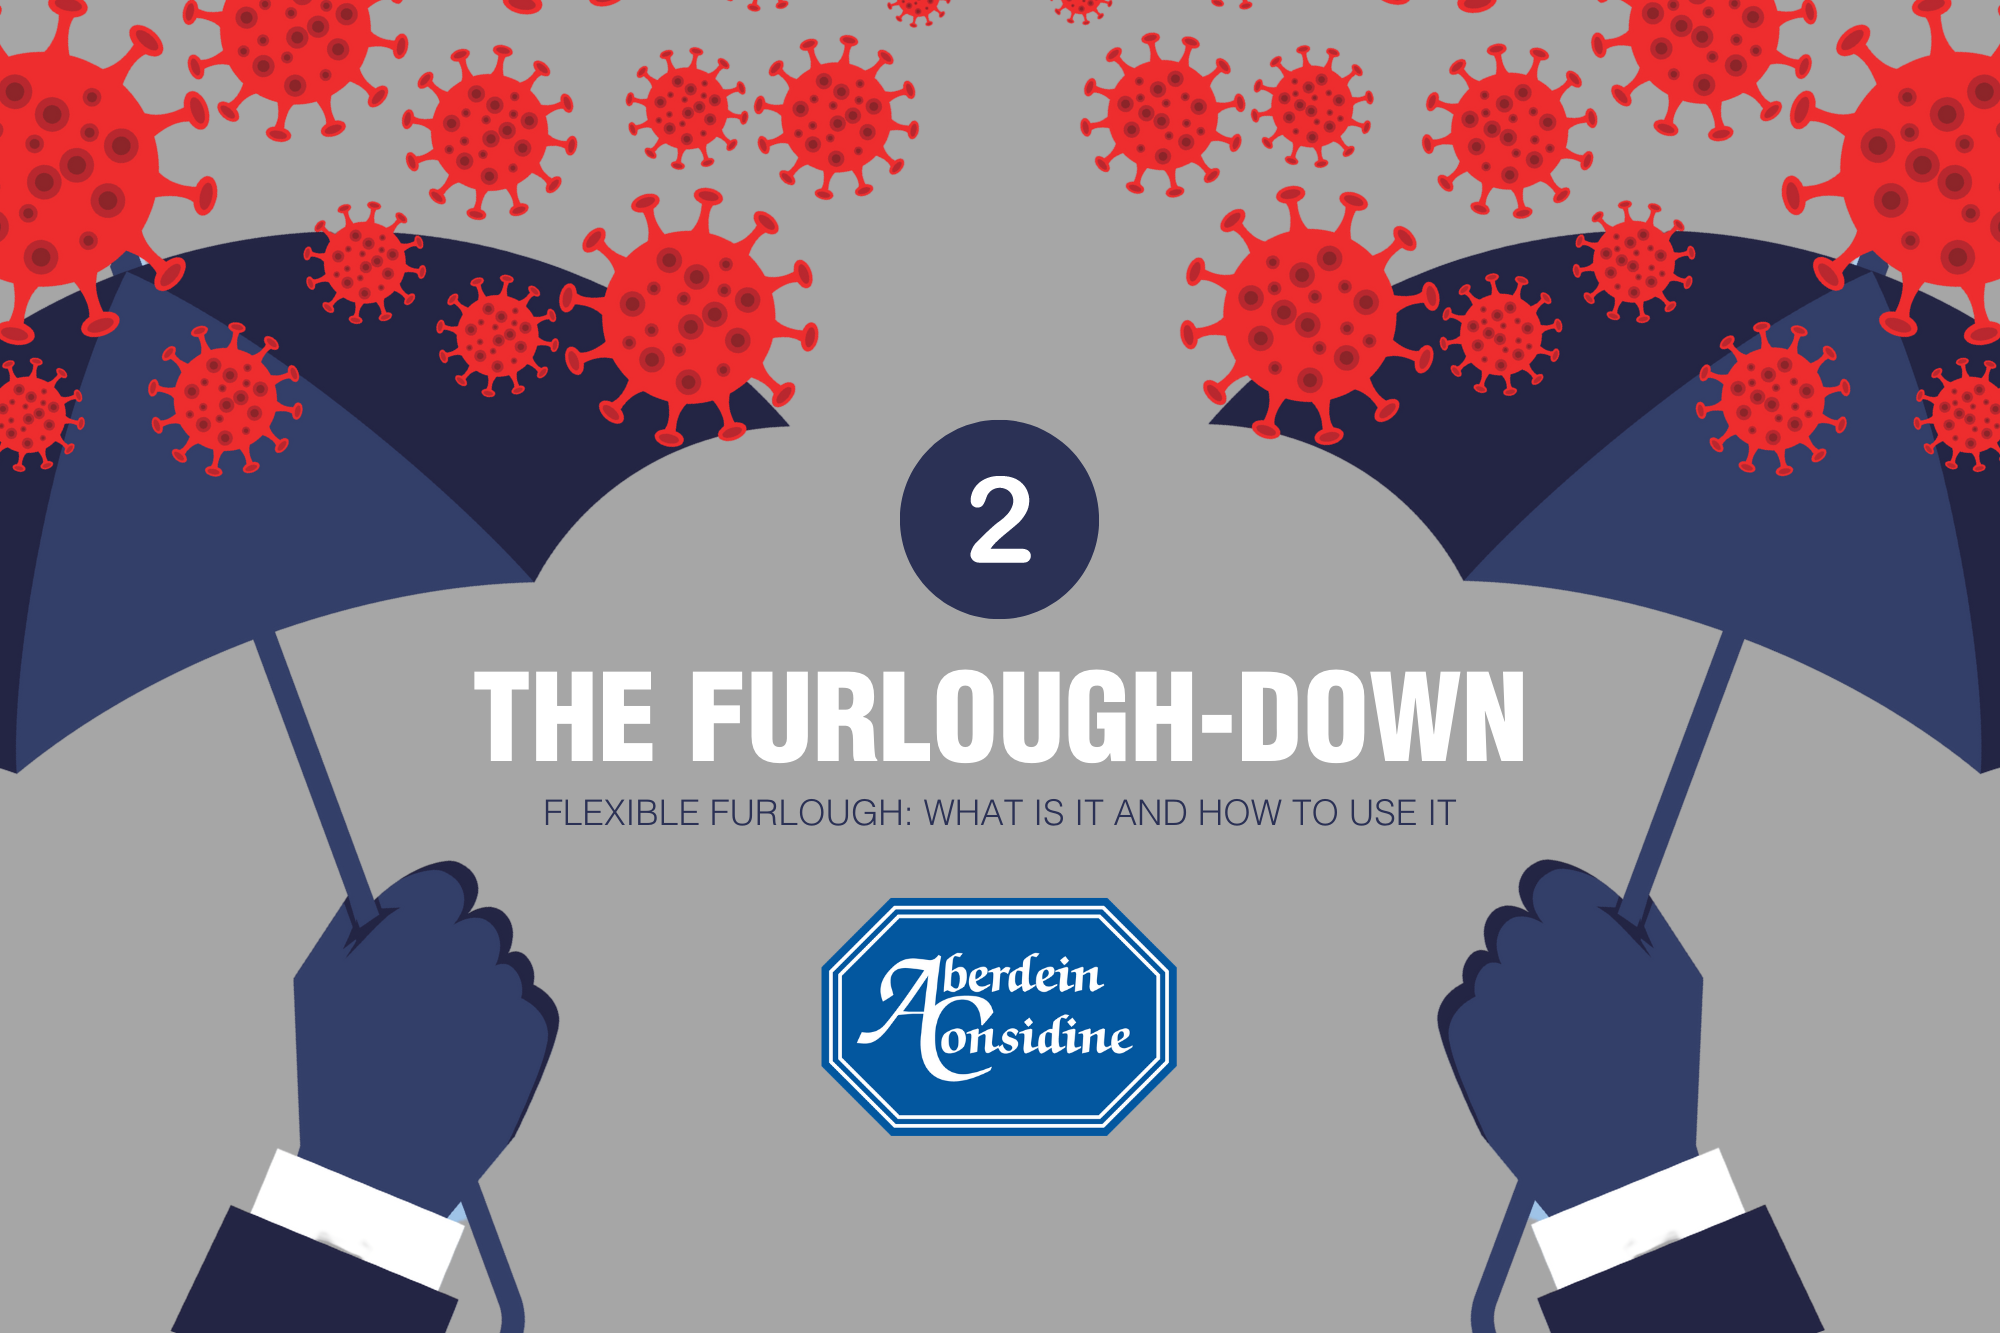 The Furlough-down: How to use flexible furlough